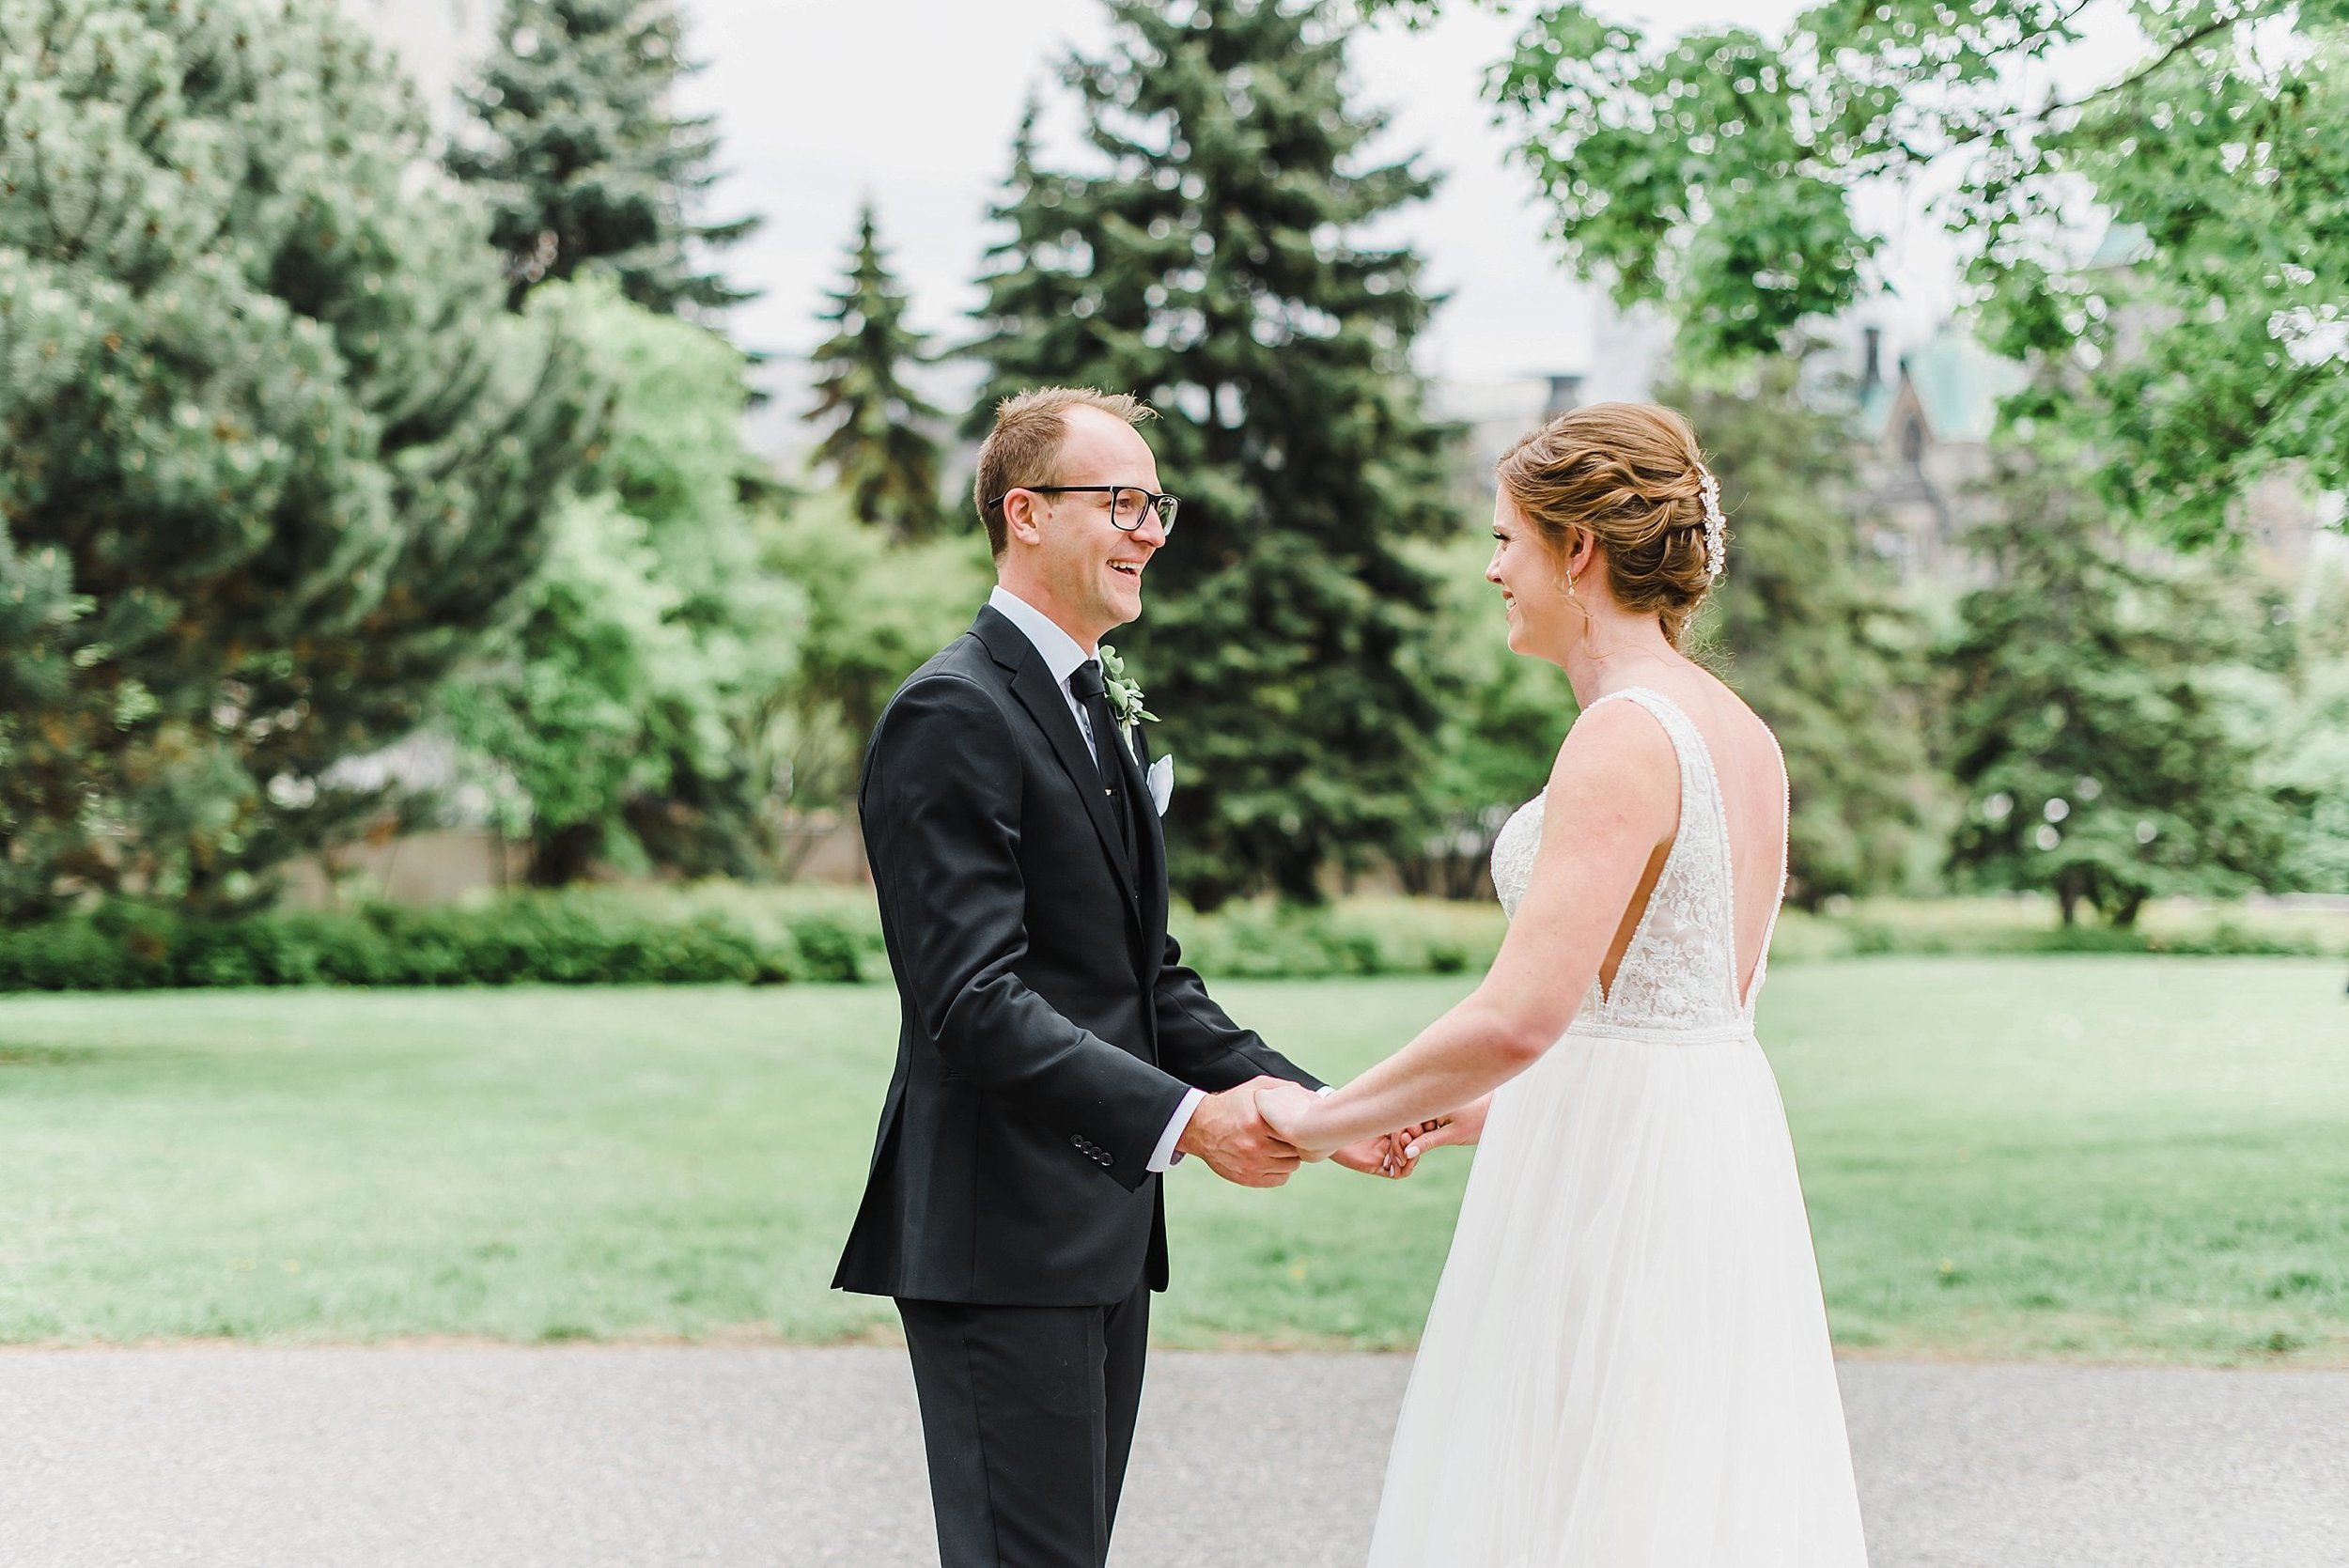 light airy indie fine art ottawa wedding photographer | Ali and Batoul Photography_0304.jpg